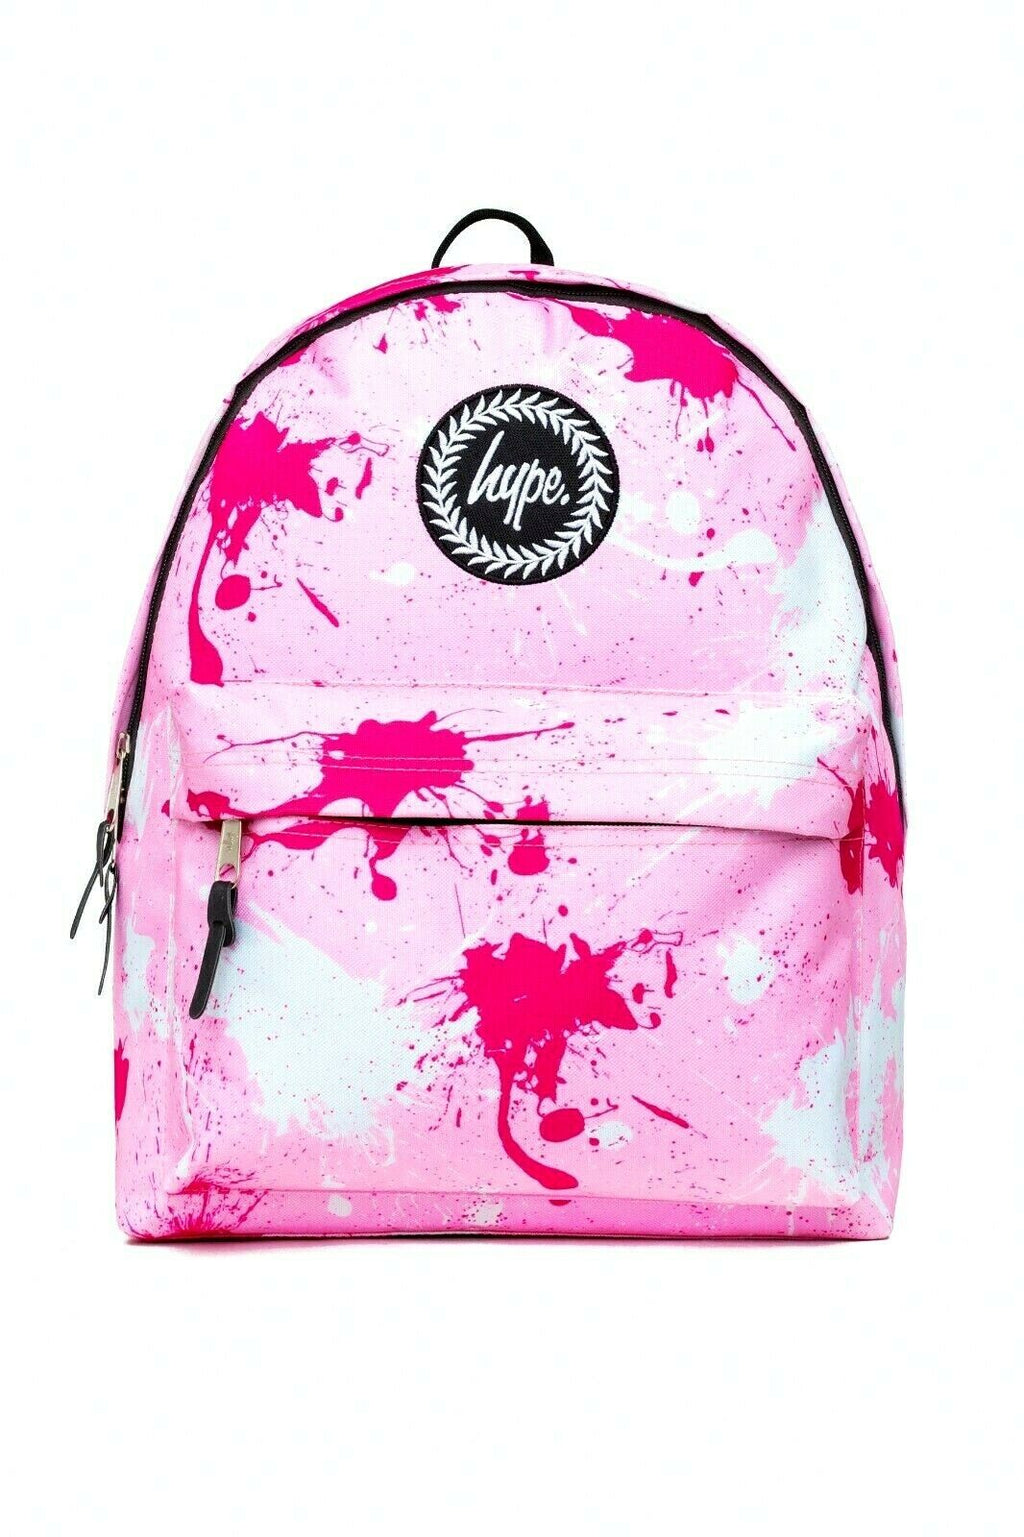 HYPE SPLATTER BACKPACK RUCKSACK BAG - PINK/FUSCHIA/WHITE